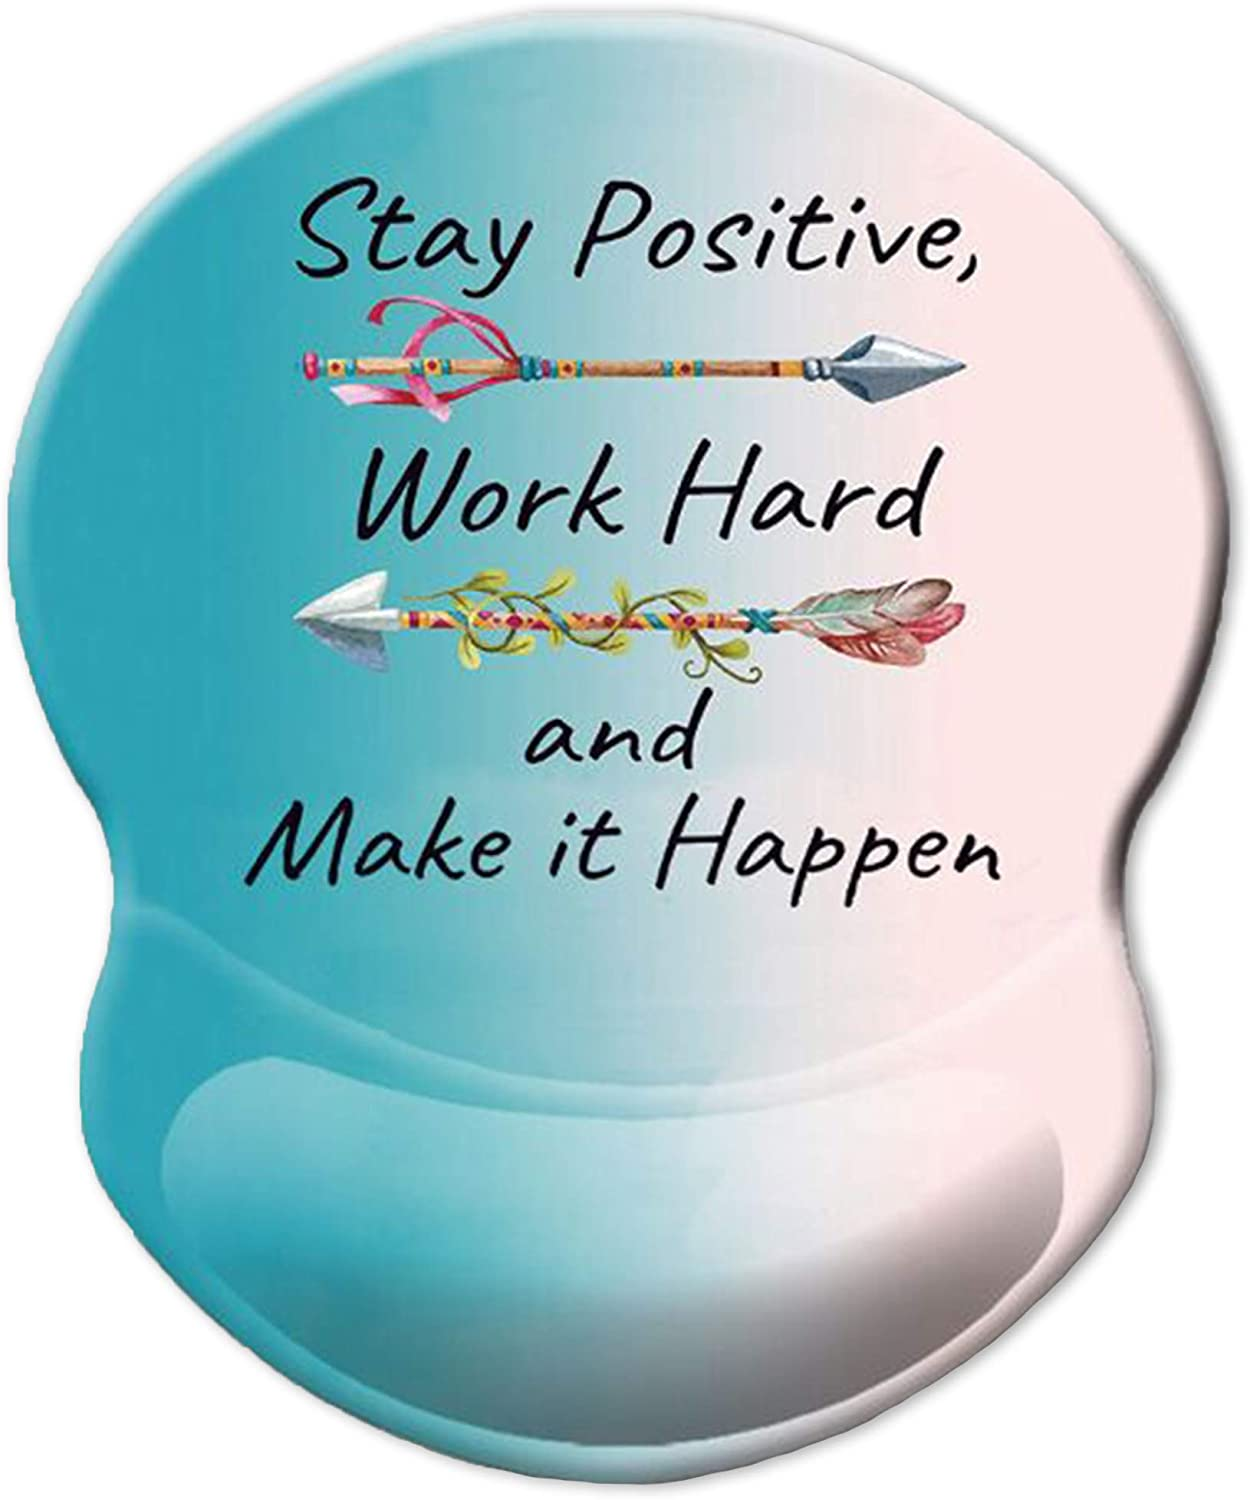 ITNRSIIET Ergonomic Mouse Pad with Gel Wrist Rest Support, Stay Positive Work Hard and Make It Happen Arrow Print Inspirational Quote Cute Mouse Pad, Pain Relief Wrist Rest Pad with Non-Slip PU Base